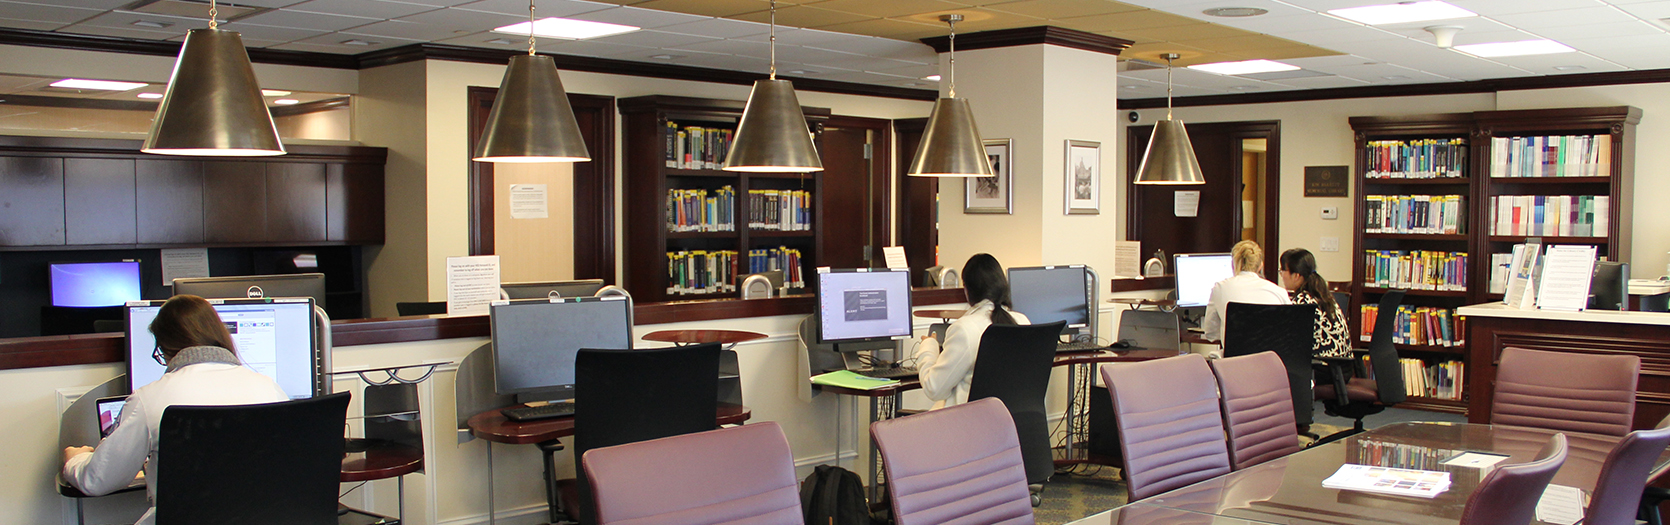 Banner image of the inside of the Kim Barrett Memorial Library